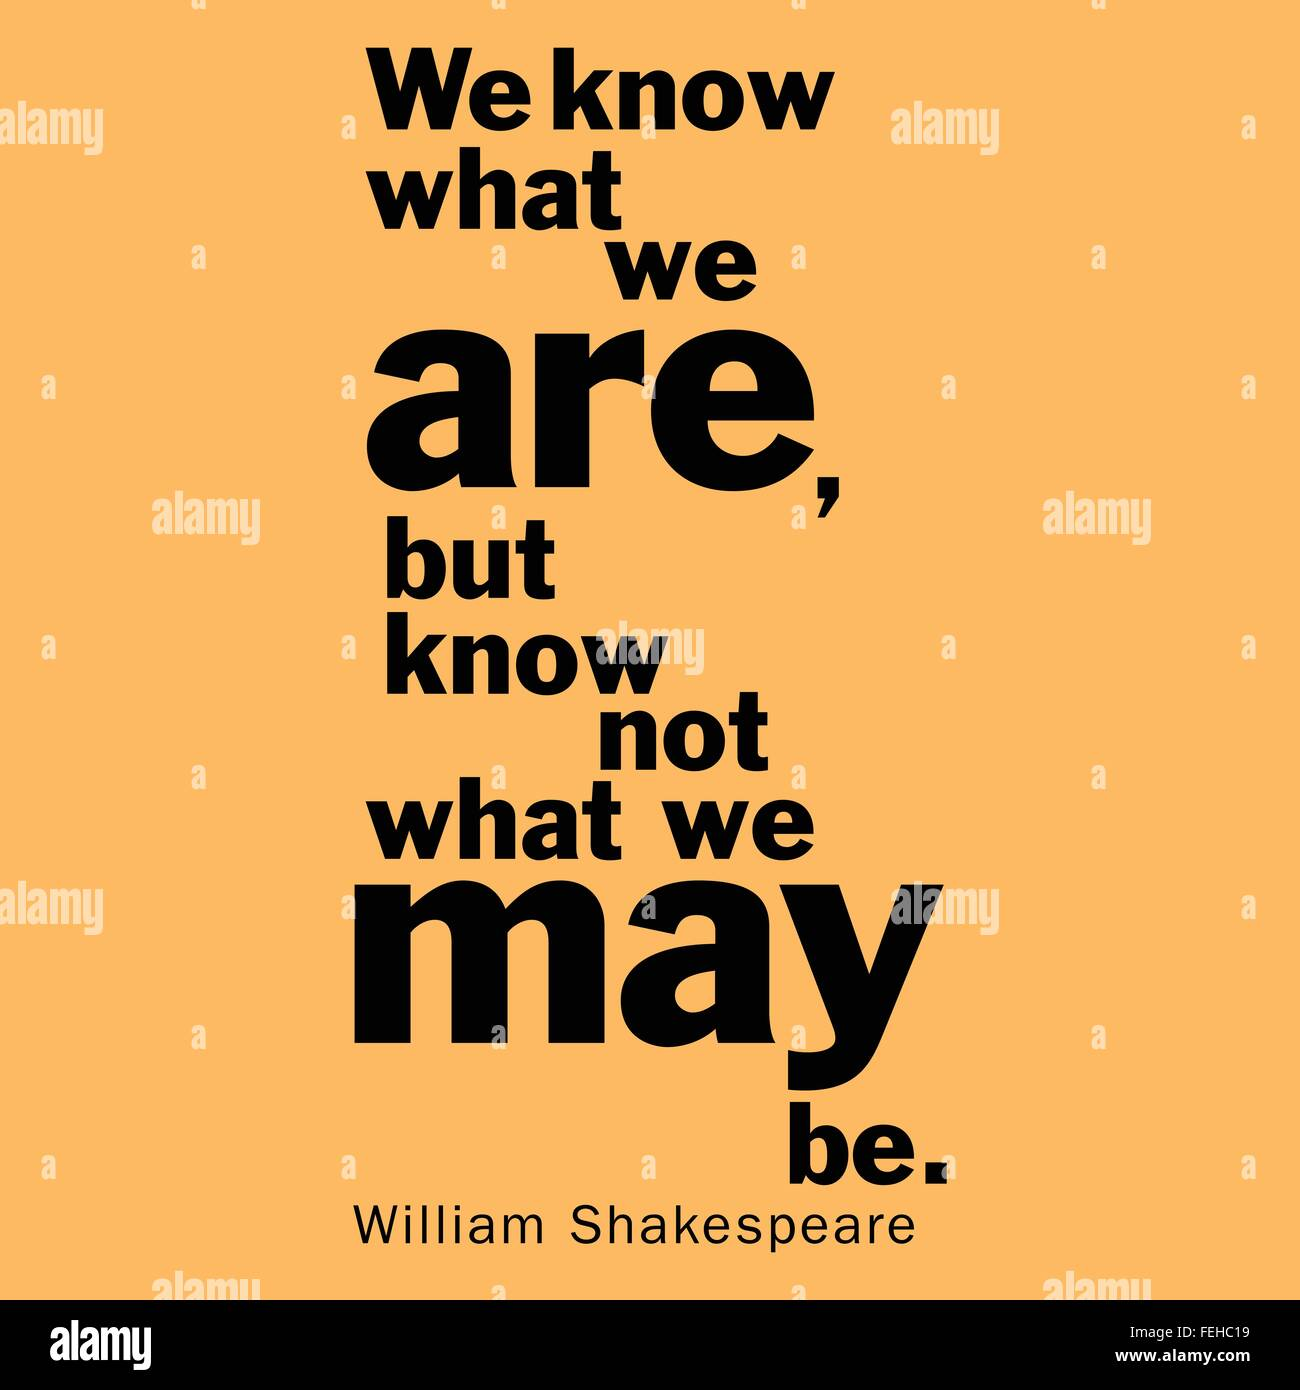 'We know what we are, but know not what we may be.' William Shakespeare - Stock Vector